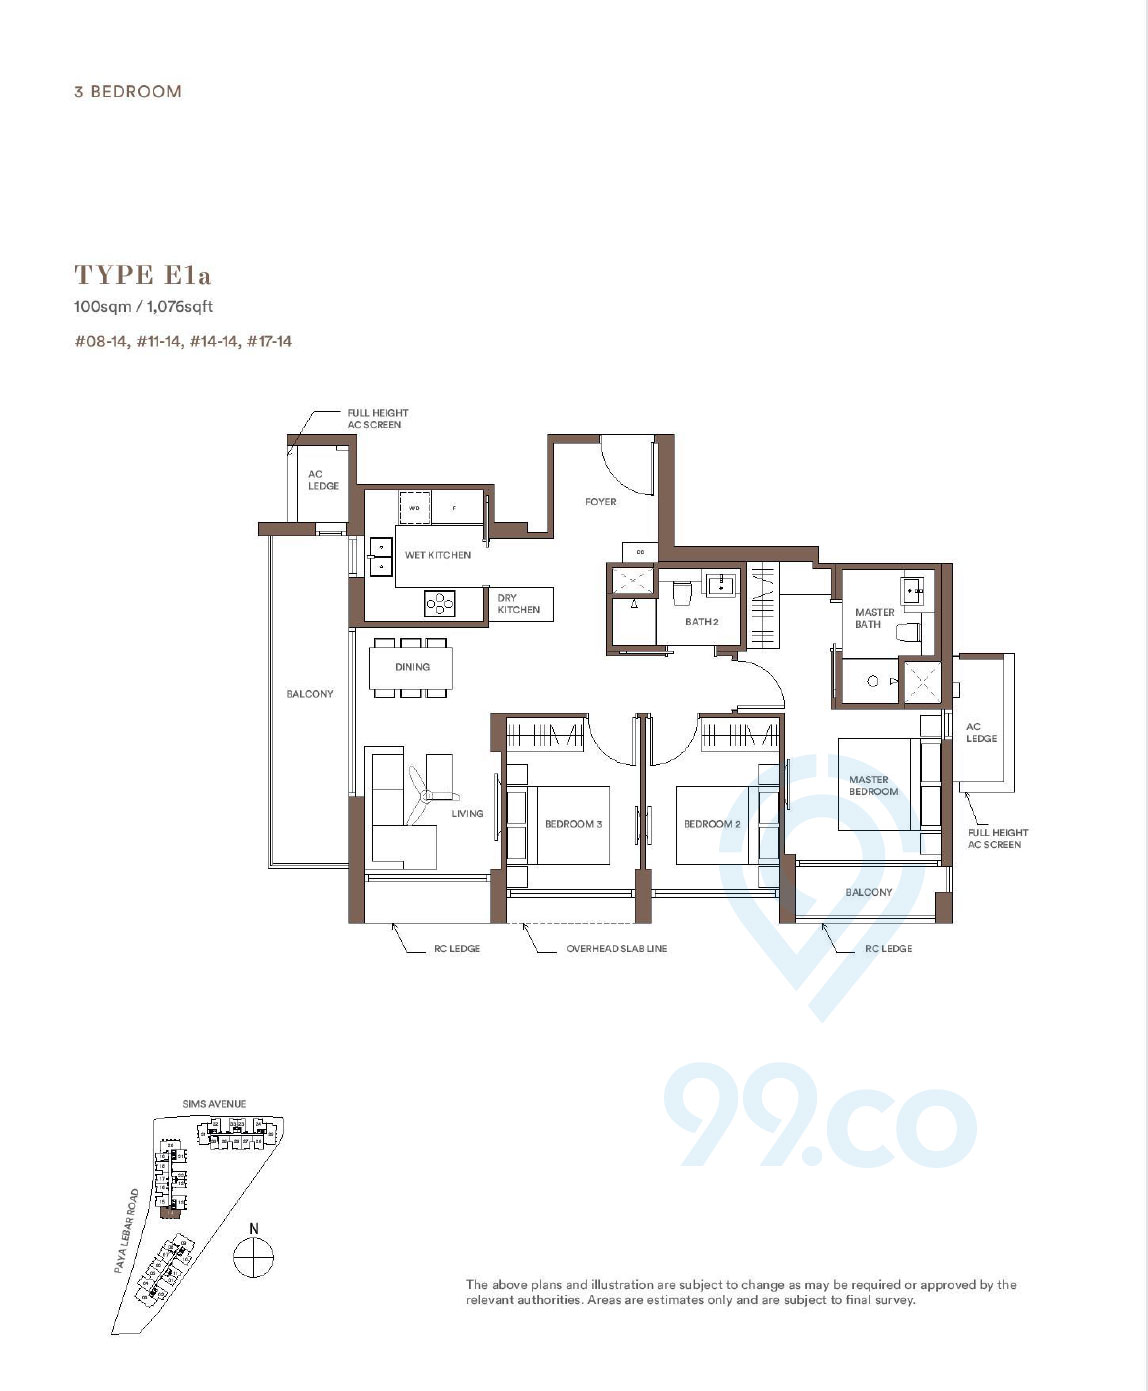 Park Place Residences 3 Bedroom Floor Plan